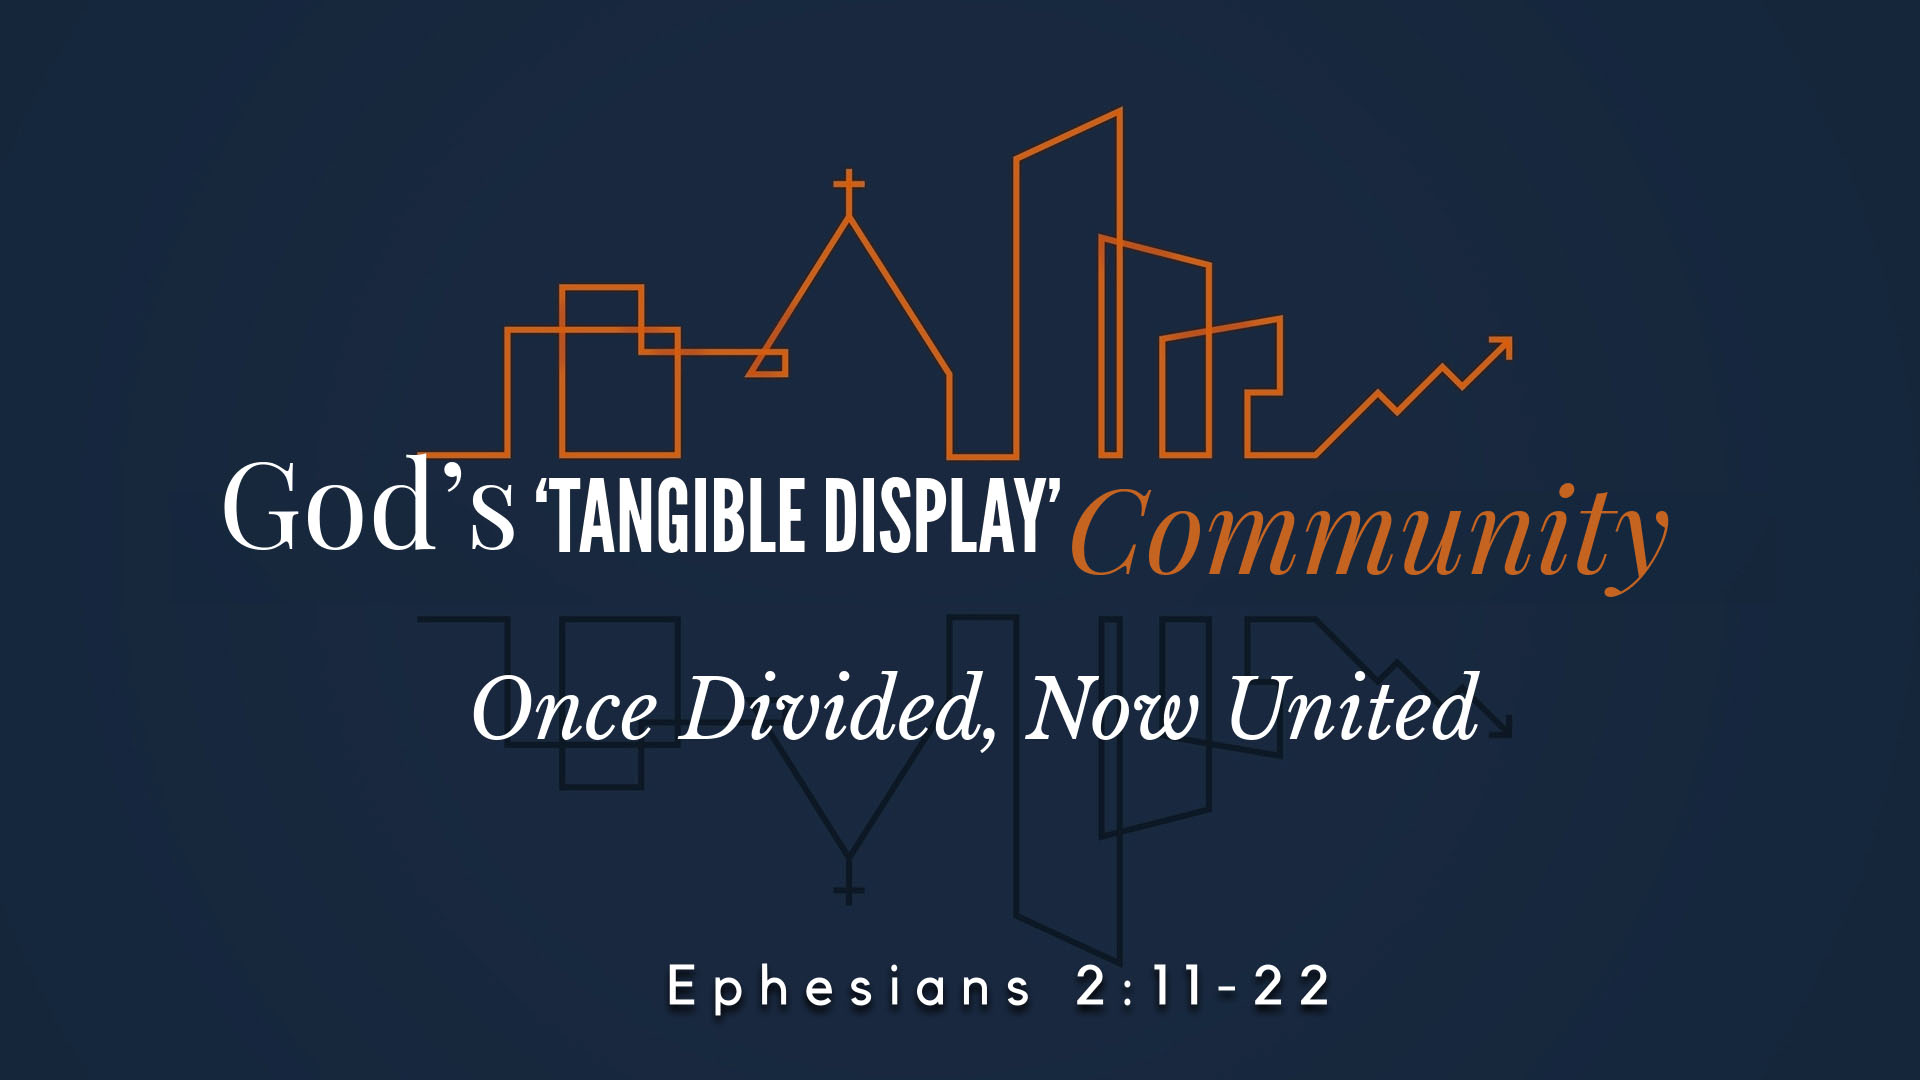 Image for the sermon Once Divided, Now United